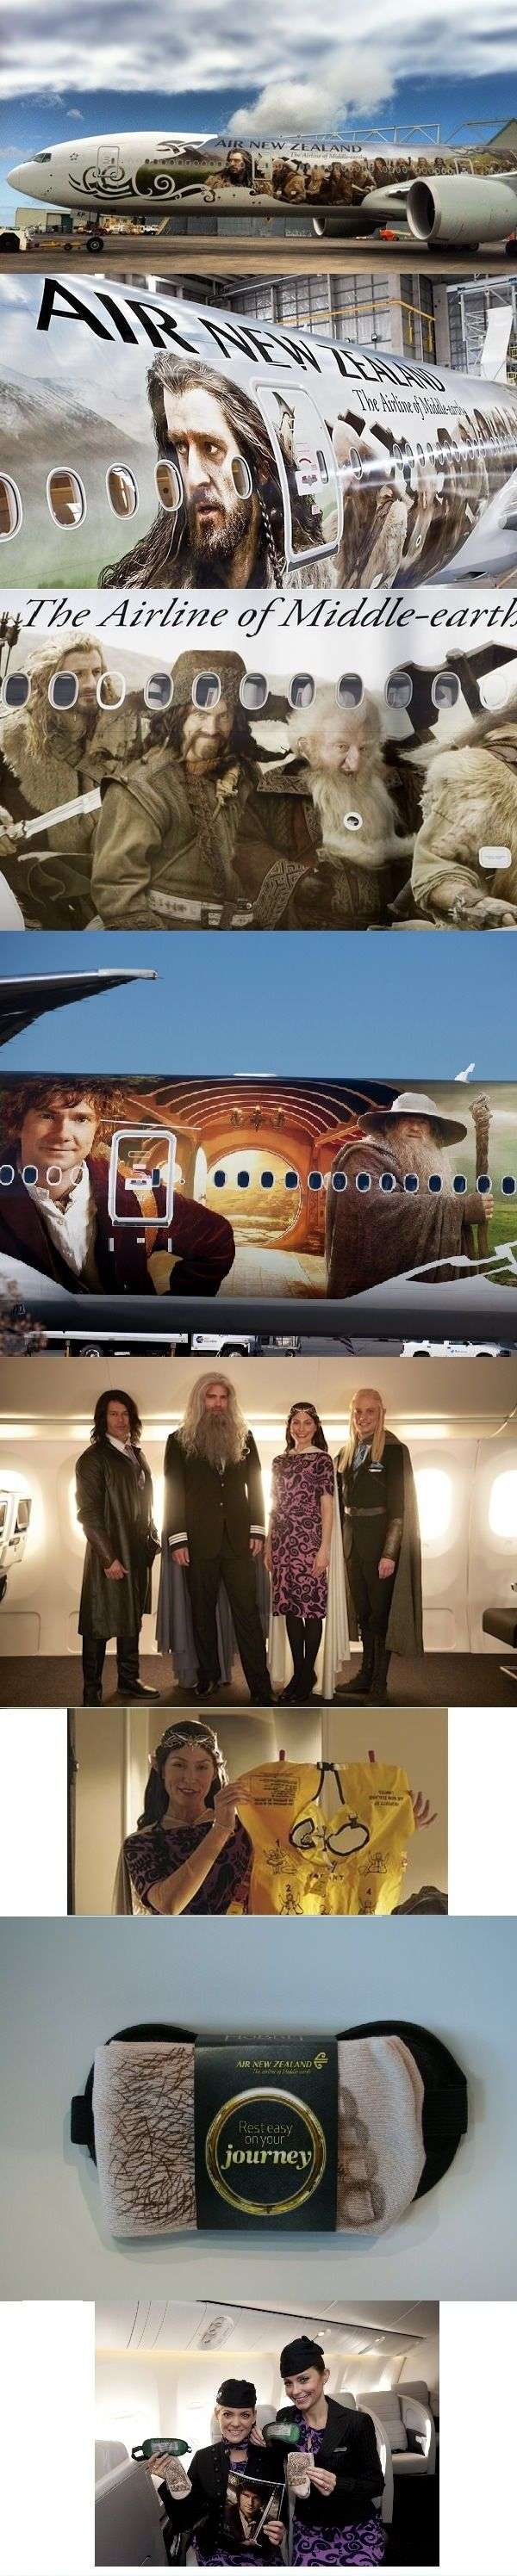 Hobbit Style Airlines. THIS IS AWESOME (honestly, this just makes me very sad... because i know i will never get to experience this awesomeness.)